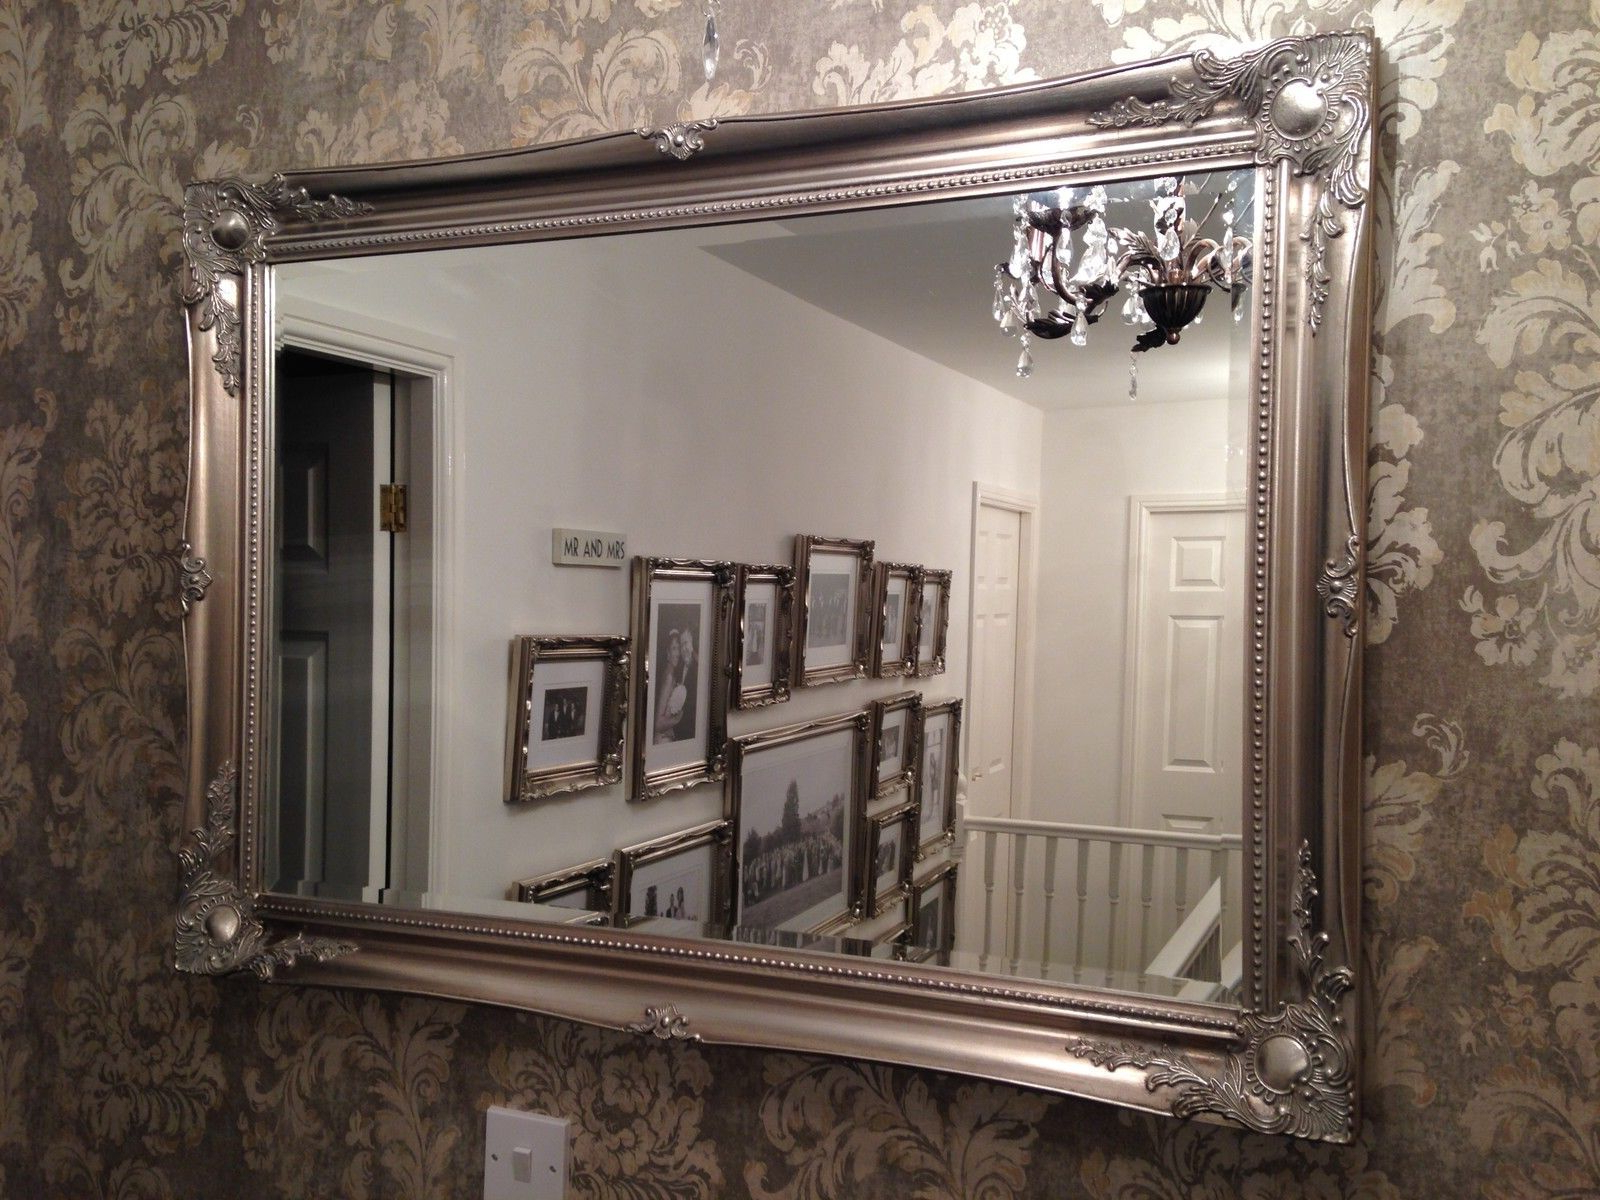 Fashionable Decorative Large Wall Mirrors With Regard To Oversized Rustic Wall Mirrors In Sterling Wade Abigail Round Large (View 8 of 20)